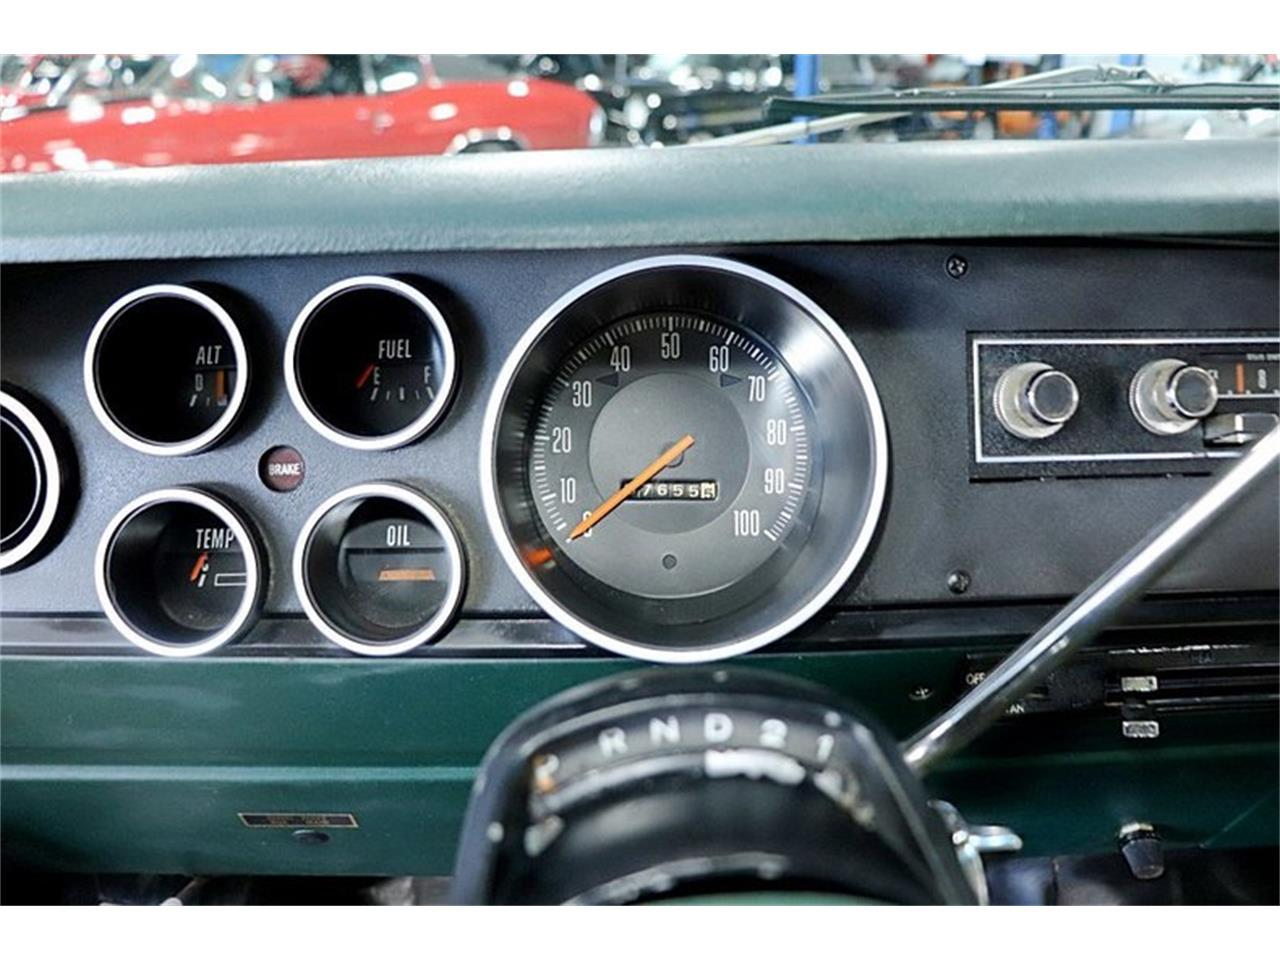 Large Picture of '74 Dodge D100 located in Michigan - $13,900.00 Offered by GR Auto Gallery - Q8LY